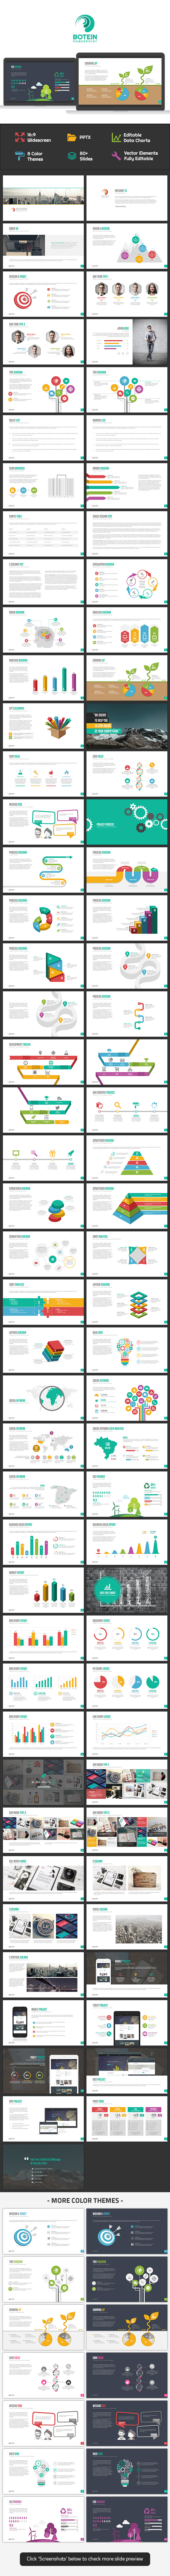 Botein Powerpoint Template - Business PowerPoint Templates